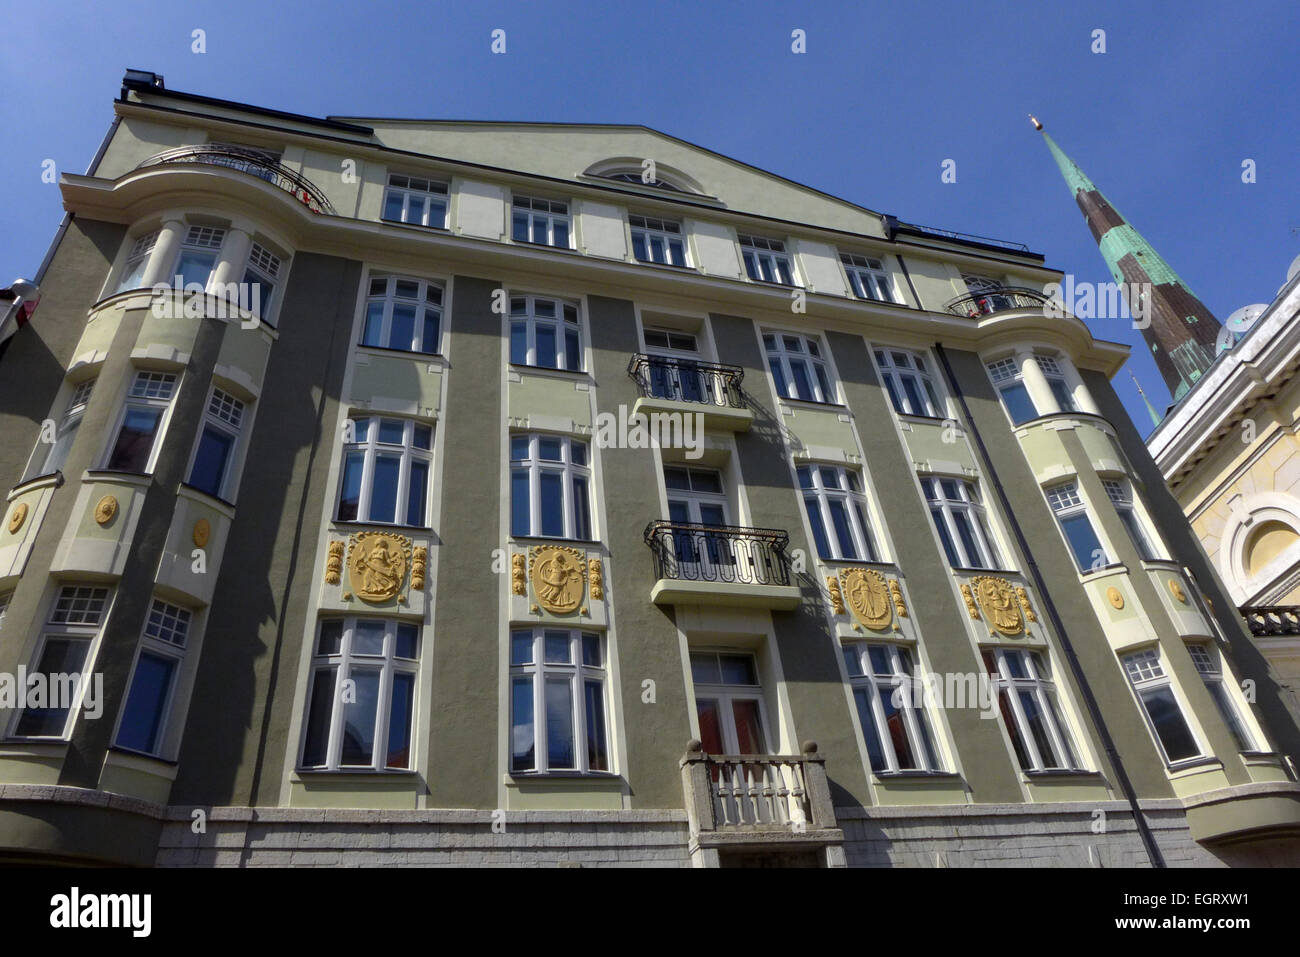 The former KGB building at 59 Pikk Street in Tallinn Estonia now an apartment building. - Stock Image